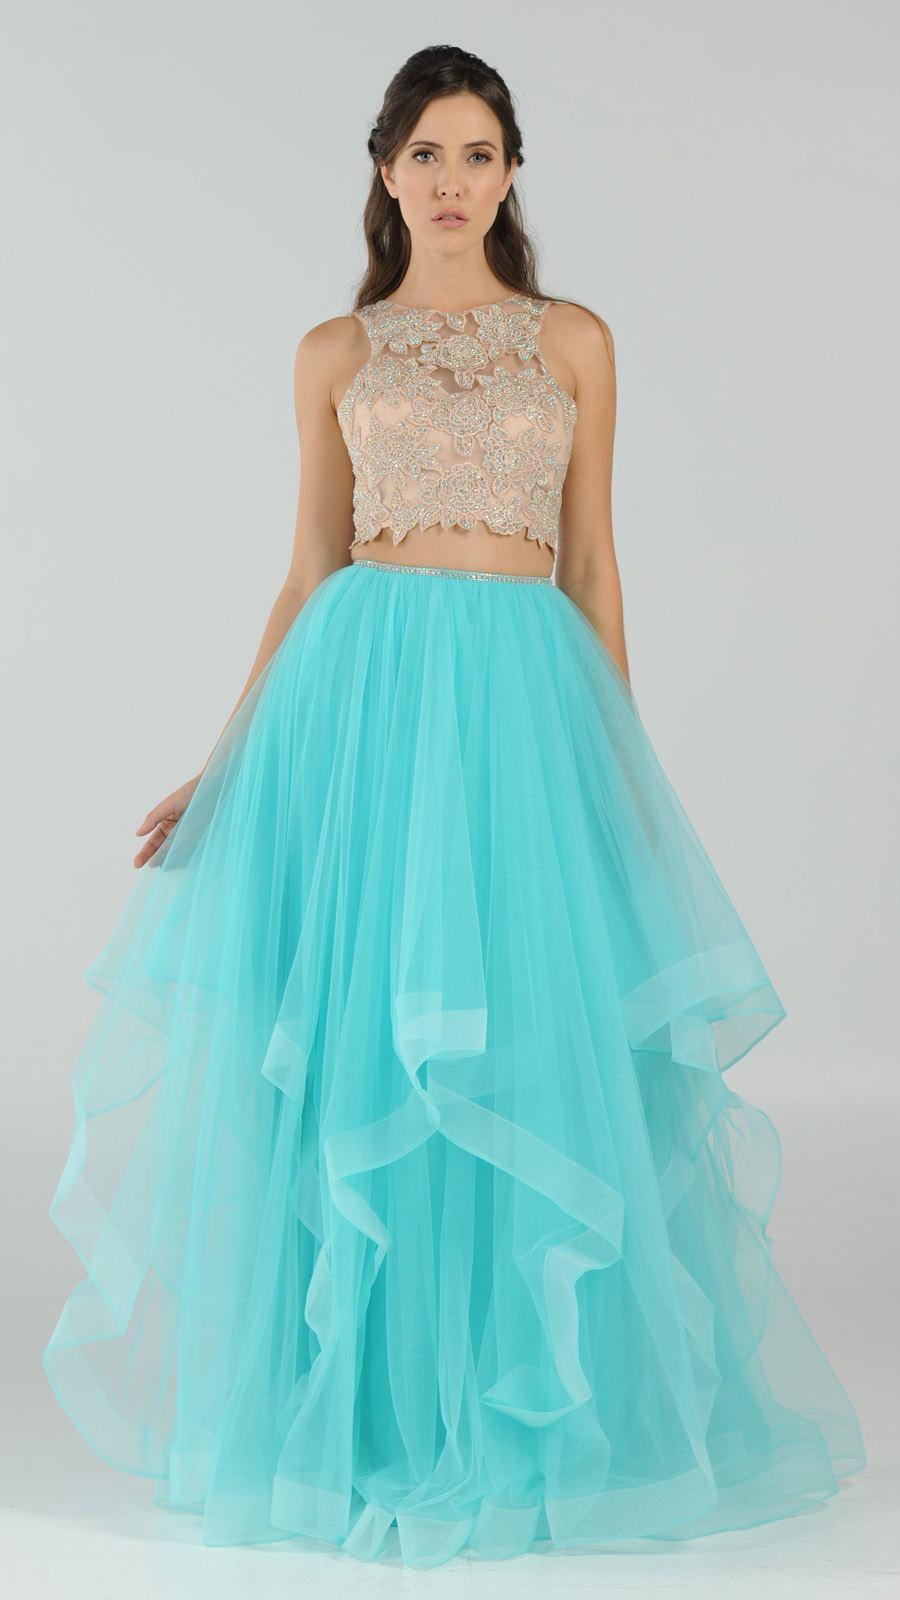 Poly USA 8176 Two-Piece Prom Gown Appliqued Crop Top Tiered Skirt ...